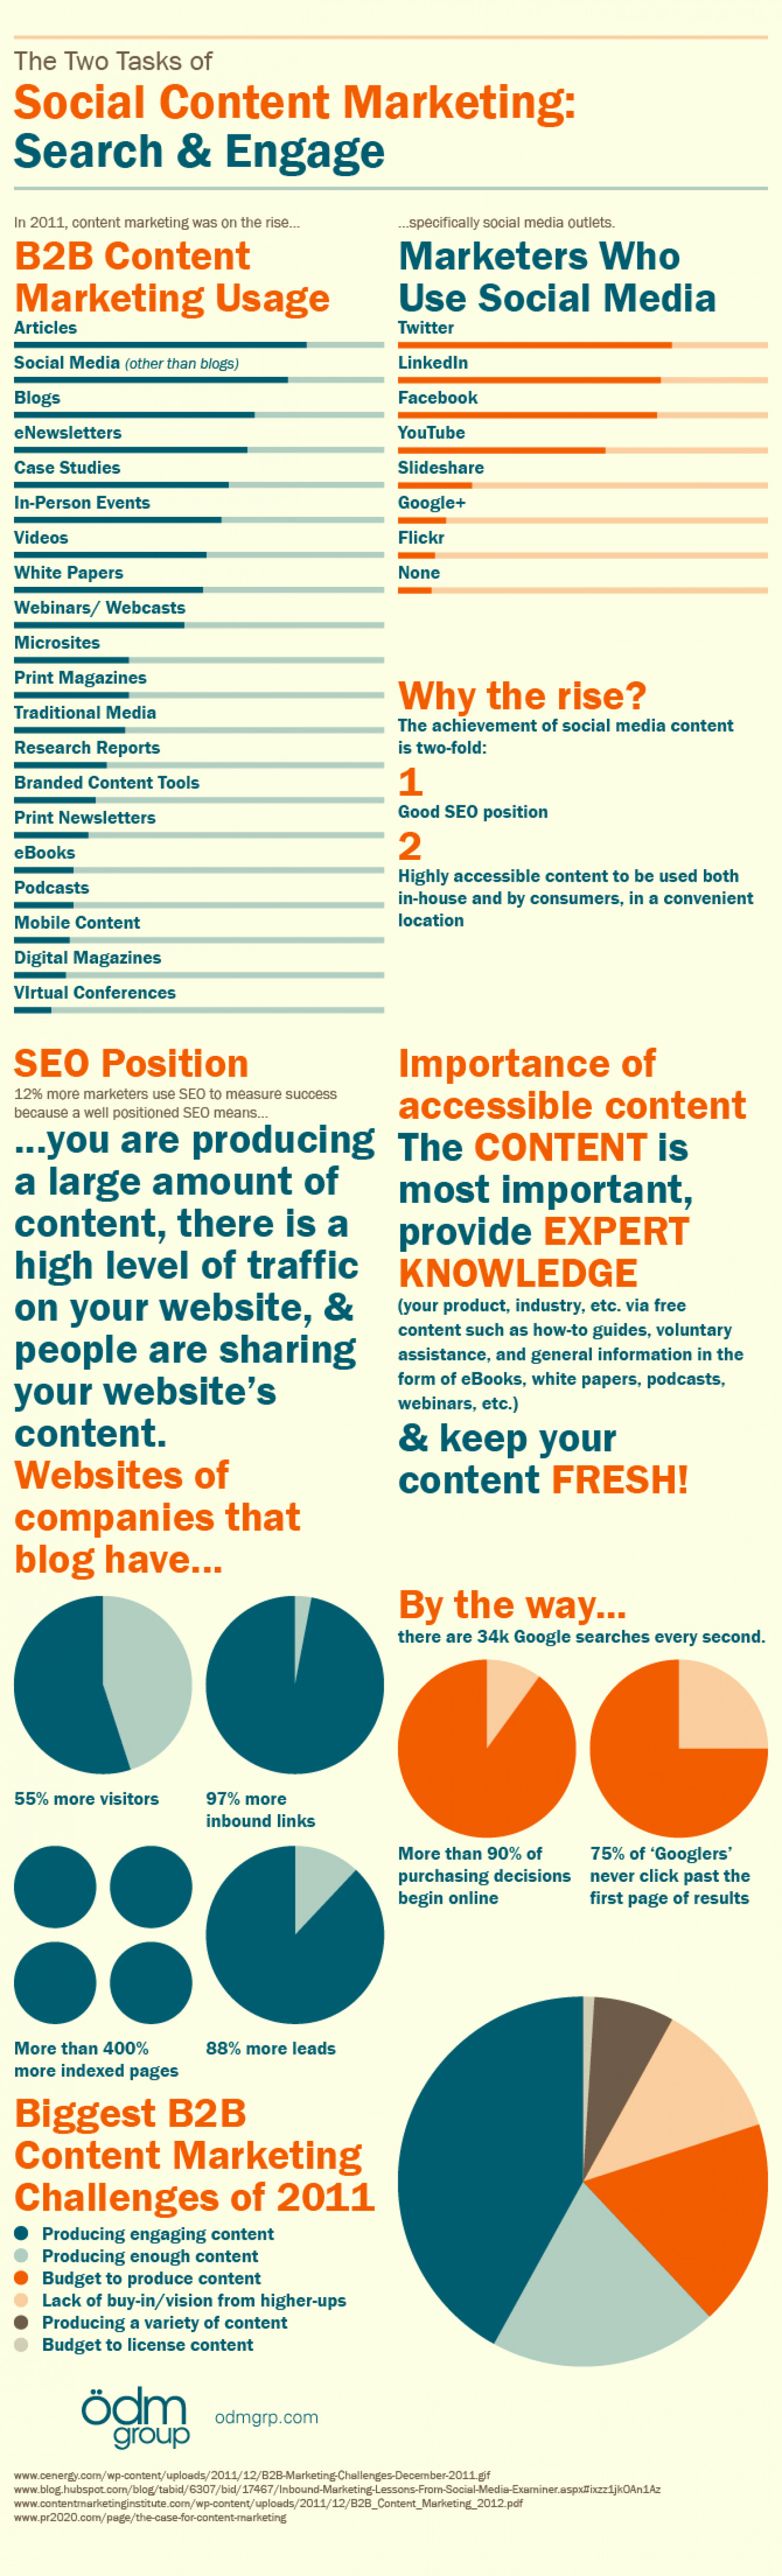 The Two Tasks of Social Content Marketing: Search and Engage Infographic